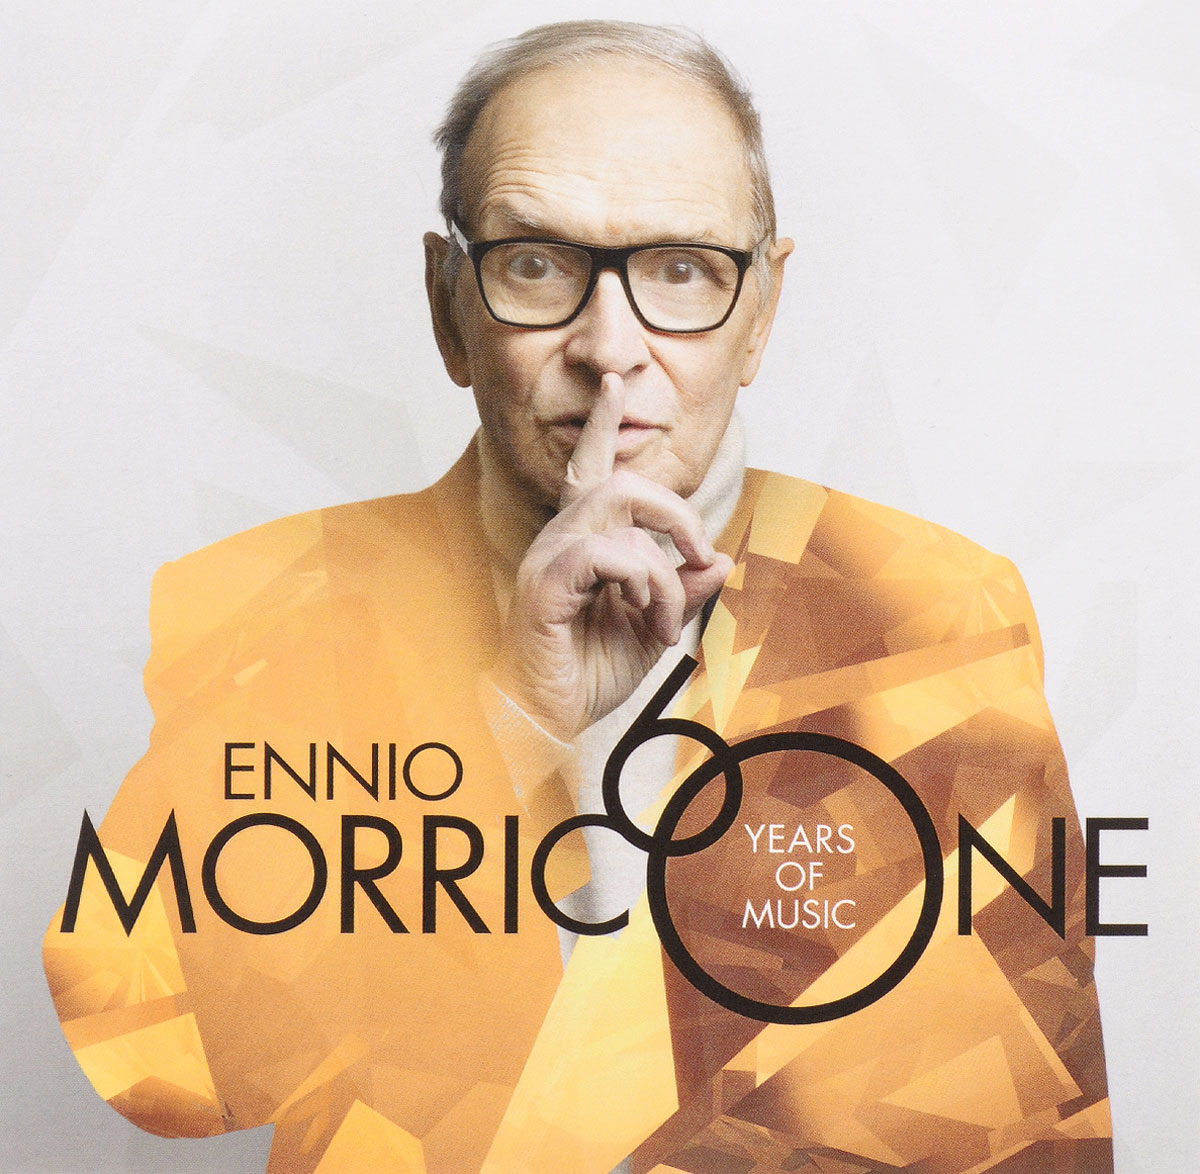 Эннио Морриконе Ennio Morricone. Morricone 60 Years Of Music (CD + DVD) эннио морриконе ennio morricone the mission original soundtrack lp